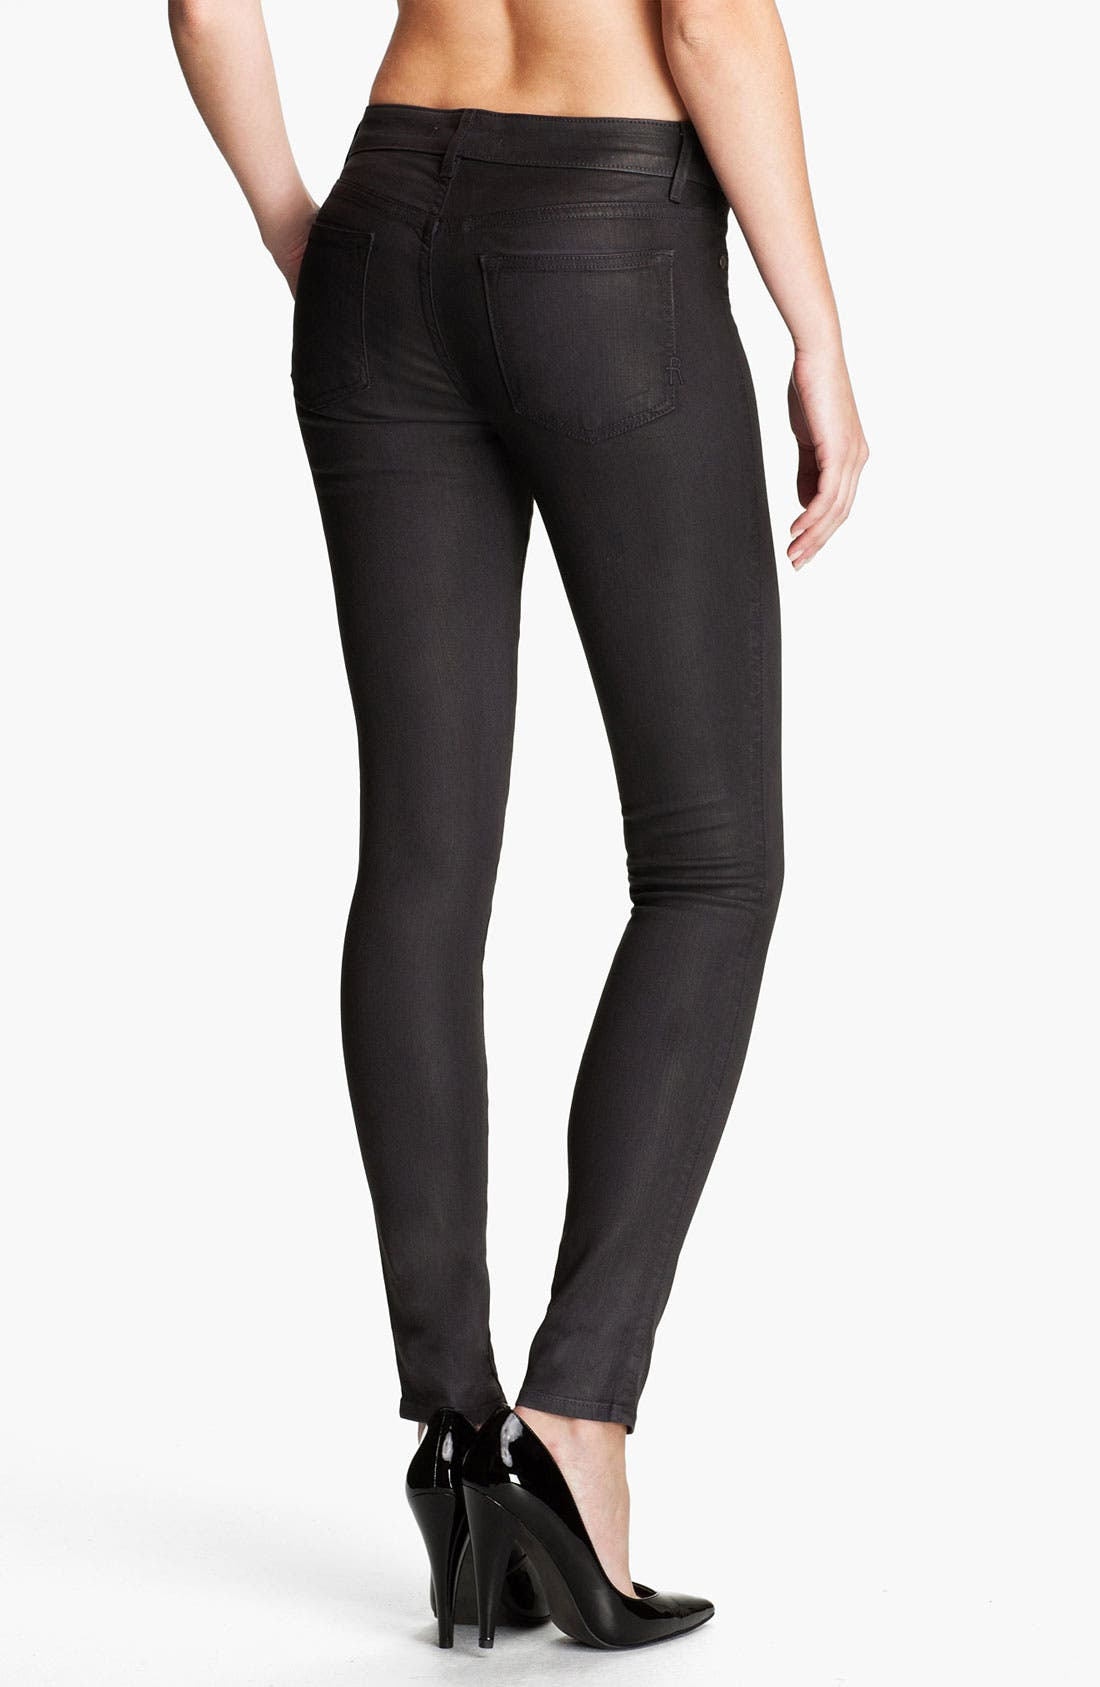 Alternate Image 2  - Rich & Skinny 'Legacy Leather' Faux Leather Skinny Jeans (Owl)